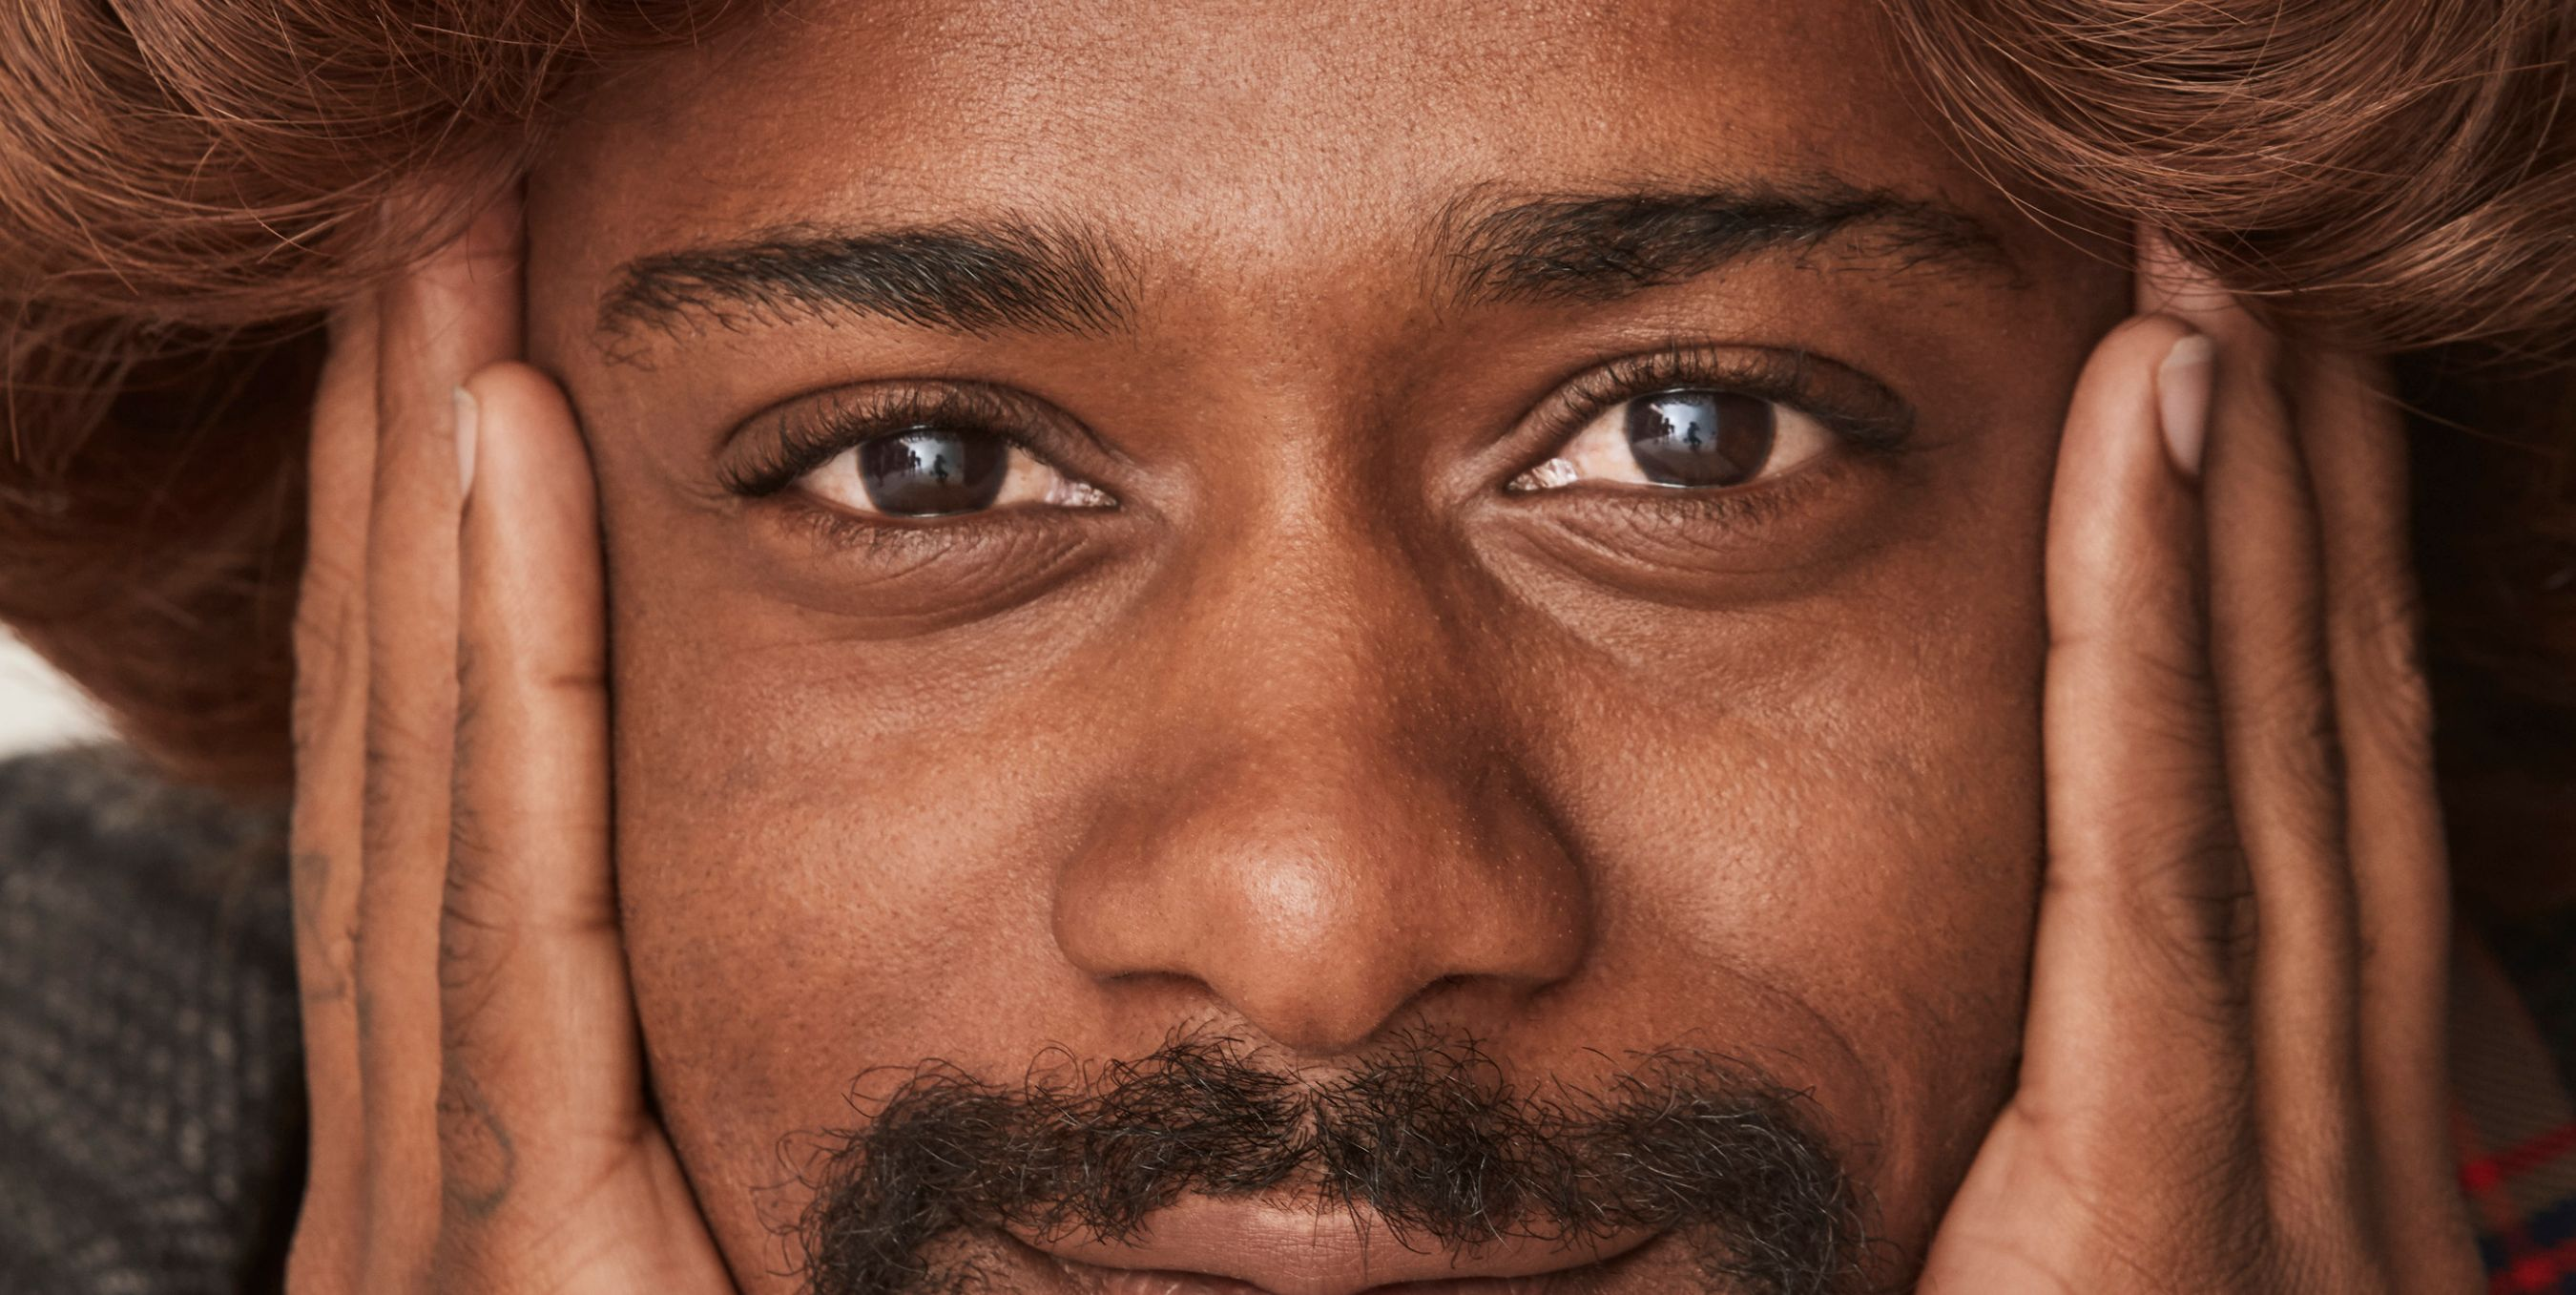 Lakeith Stanfield for CR Men Issue 7 by Roe Ethridge